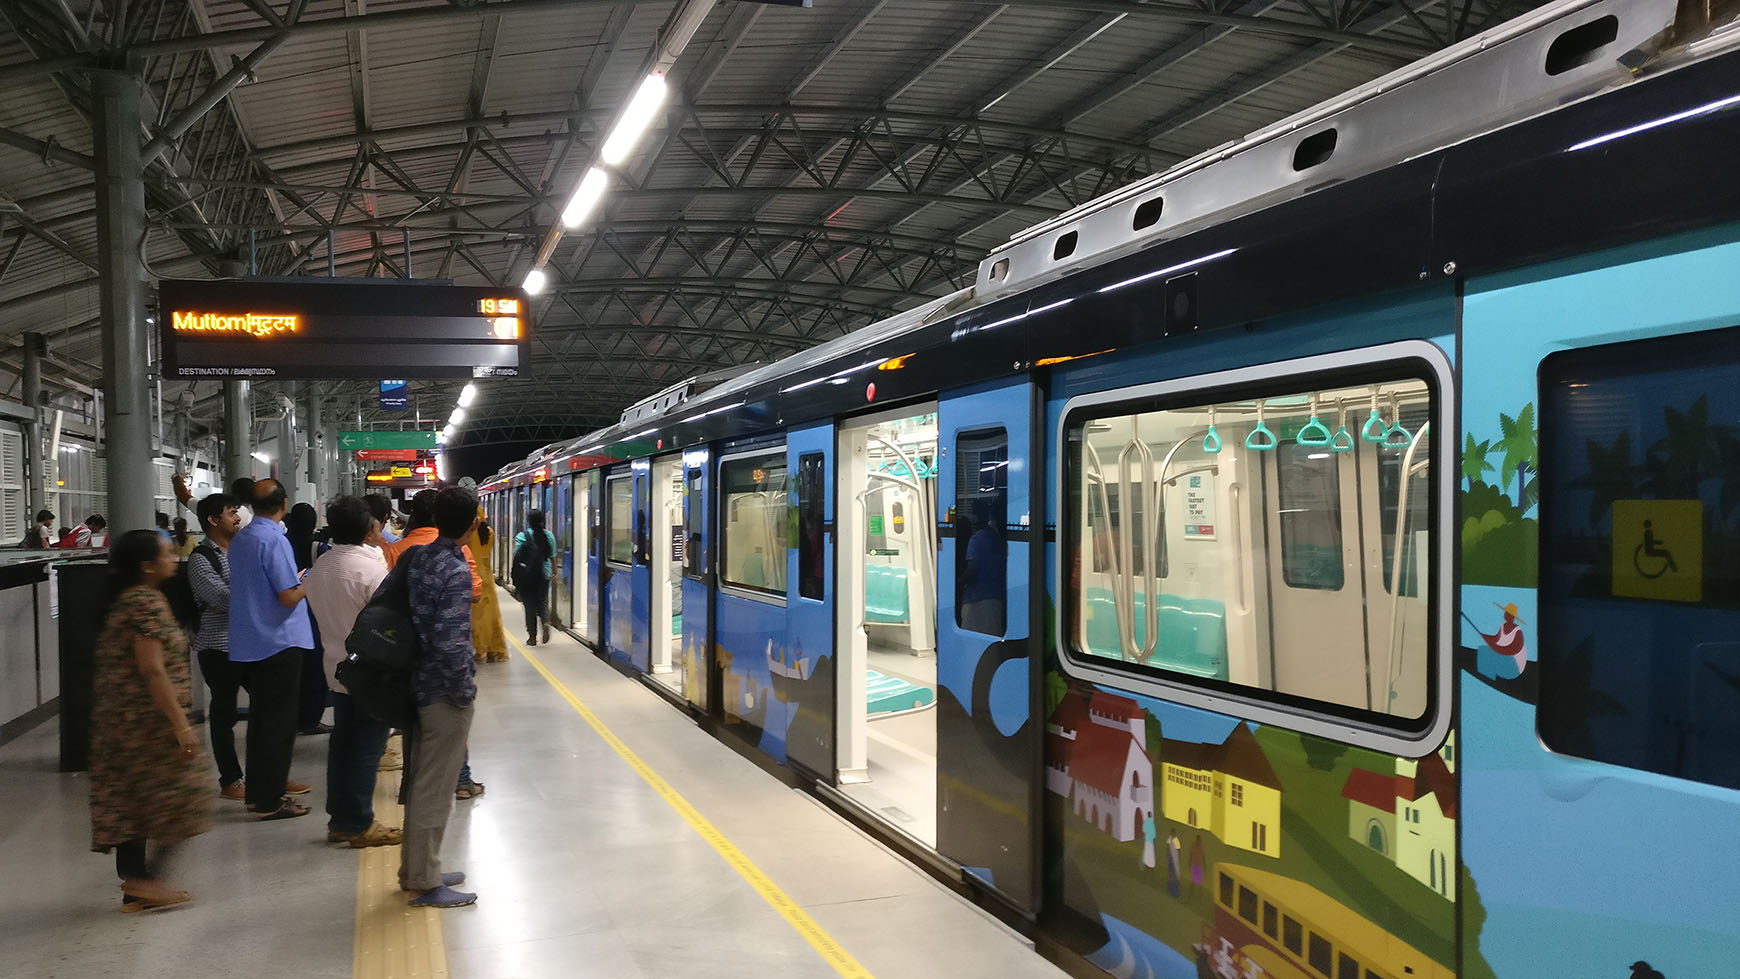 Hyderabad Metro recording footfall of 80,000-85,000 passengers per day